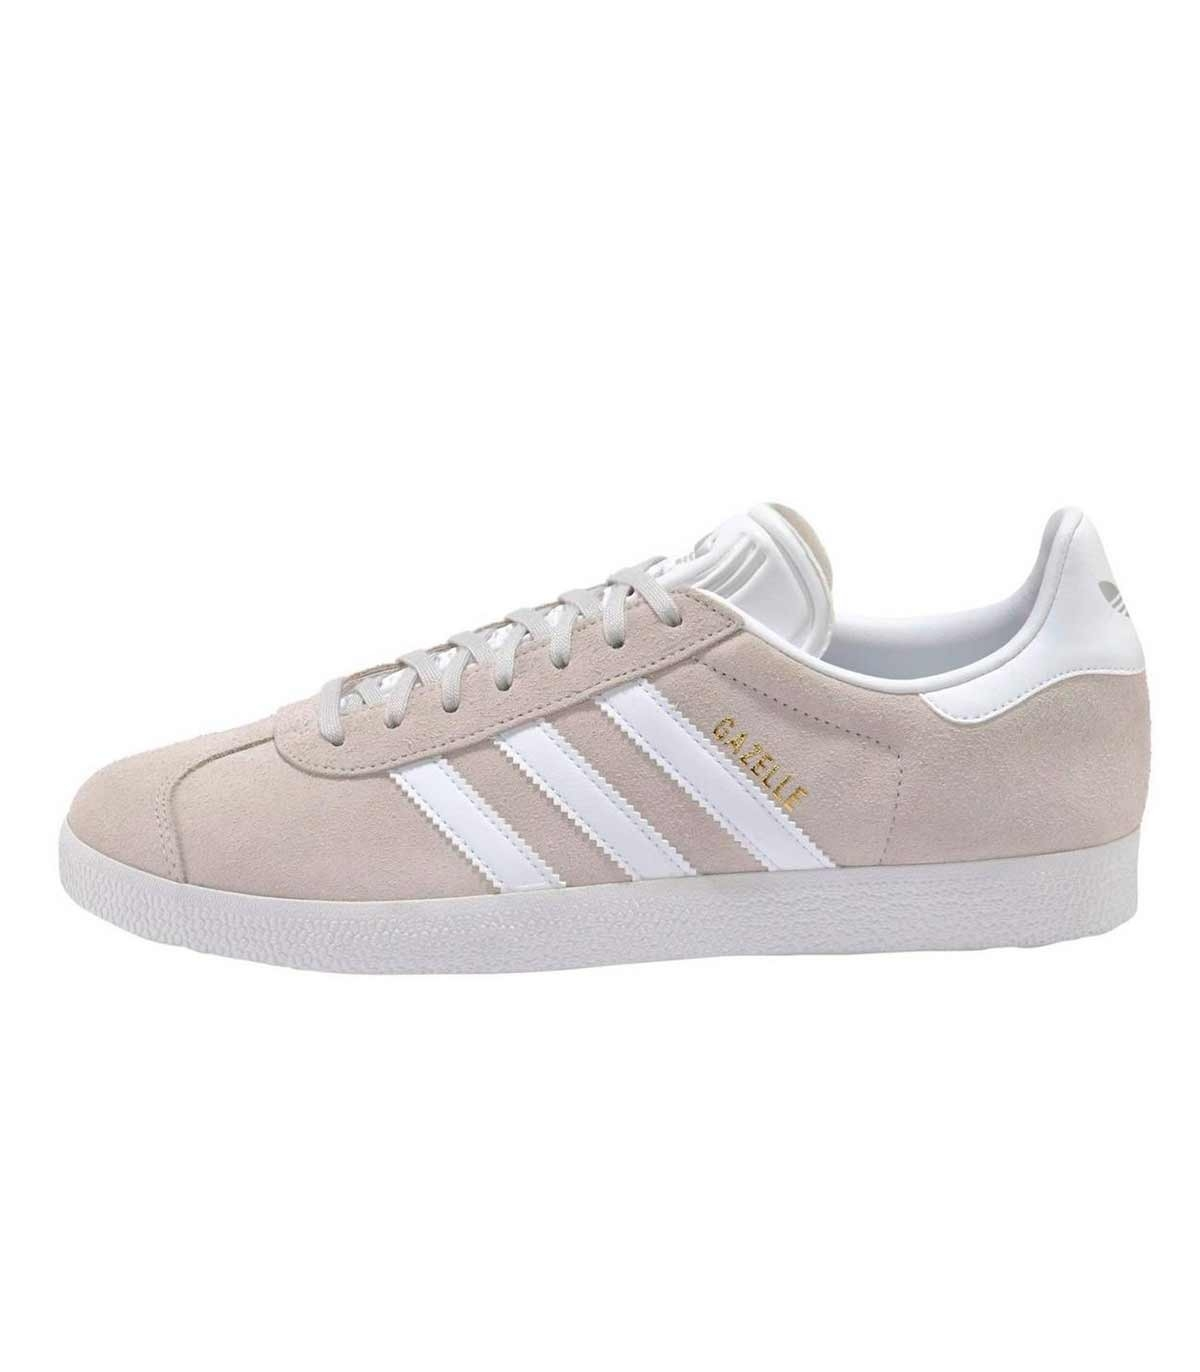 order online low price sale reasonably priced Buy Adidas Gazelle shoes | Quick delivery 24 - 48h | Secure ...